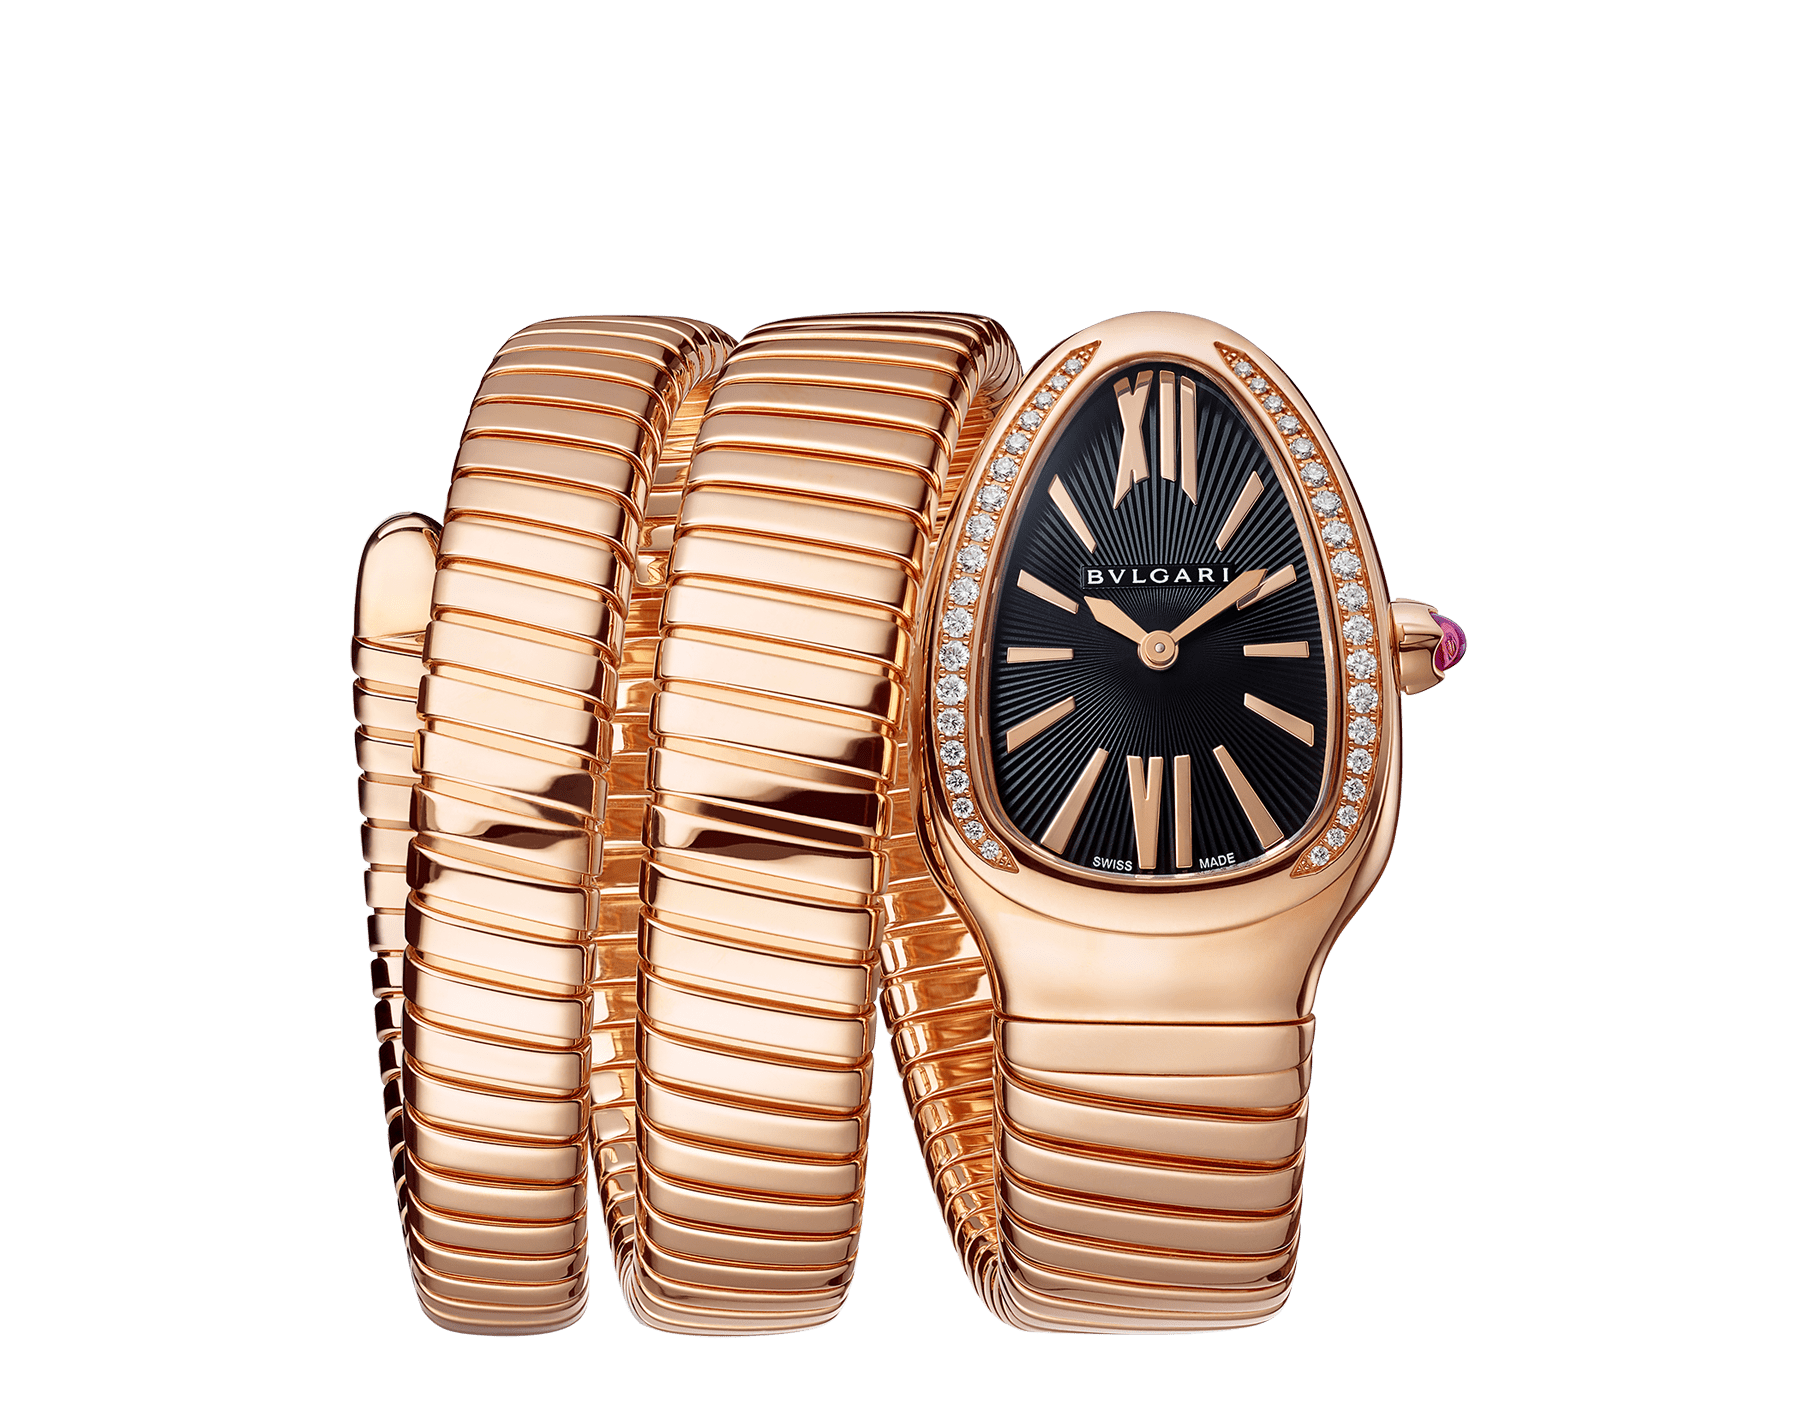 Serpenti Tubogas double spiral watch with 18 kt rose gold case set with brilliant cut diamonds, black opaline dial and 18 kt rose gold bracelet. 101814 image 1